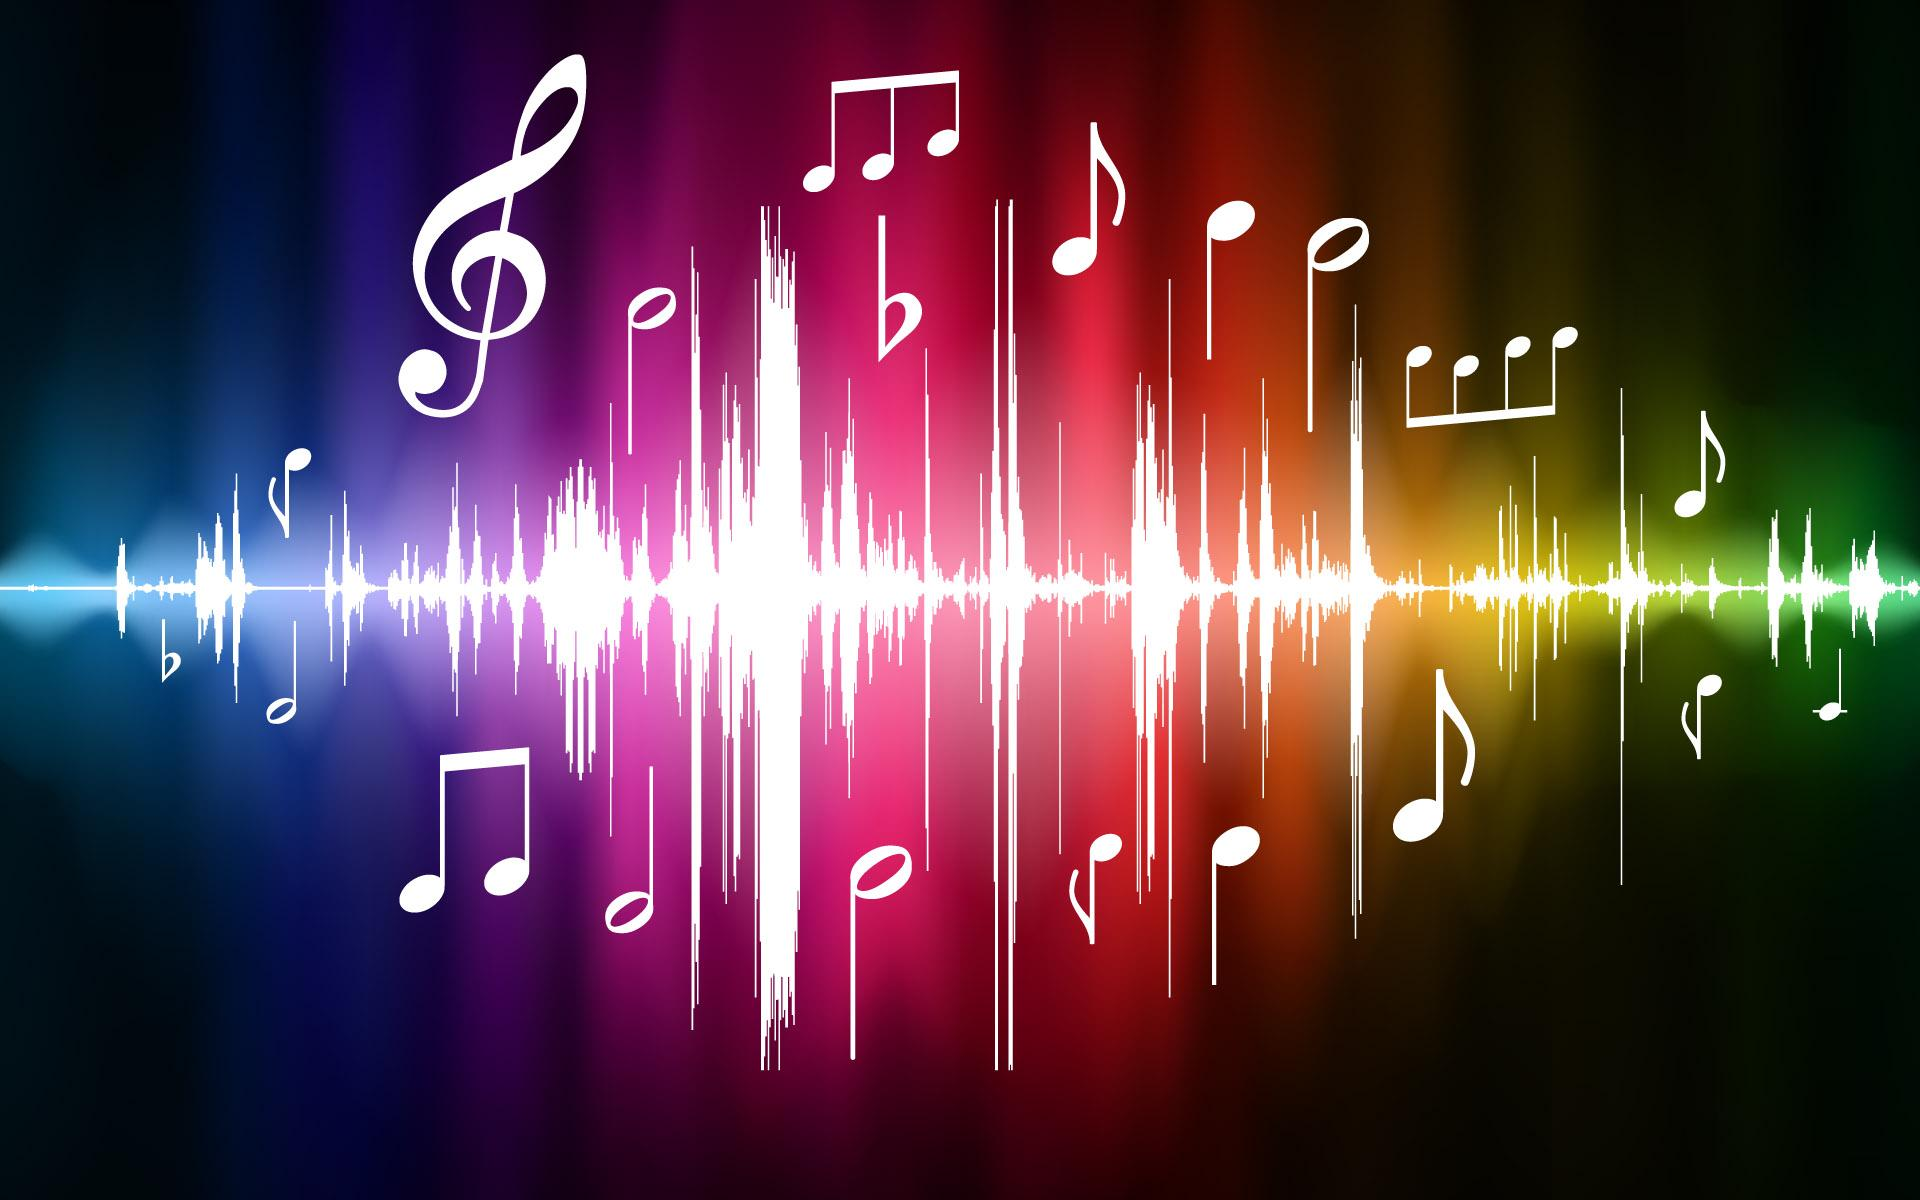 Cool Music Designs 11162 Hd Wallpapers in Music   Imagescicom 1920x1200